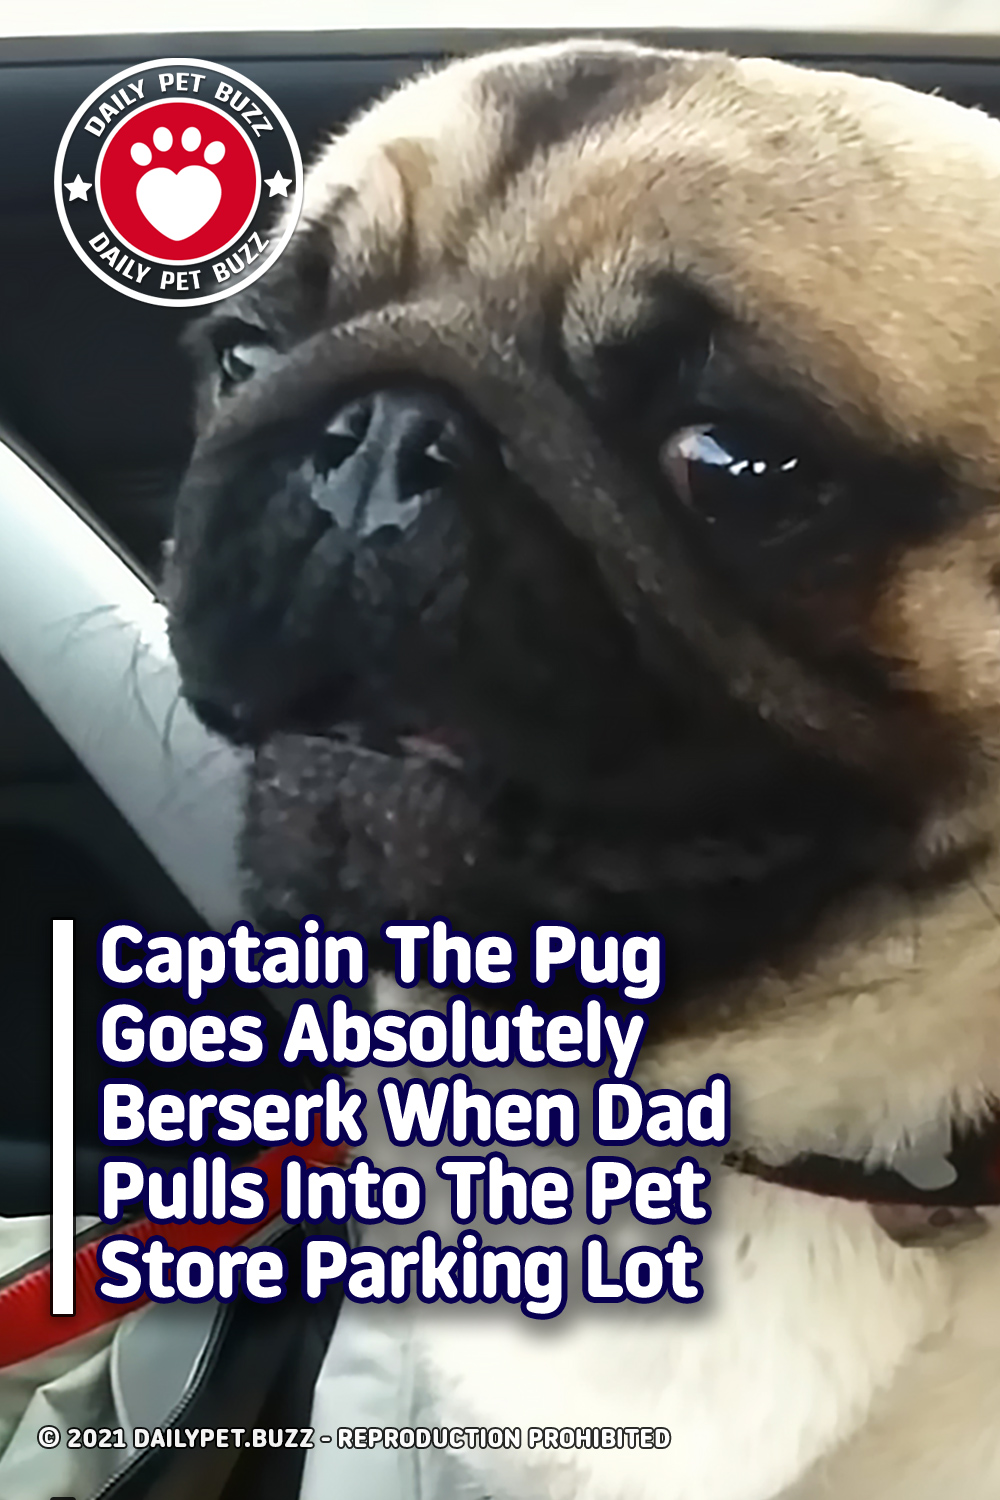 Captain The Pug Goes Absolutely Berserk When Dad Pulls Into The Pet Store Parking Lot